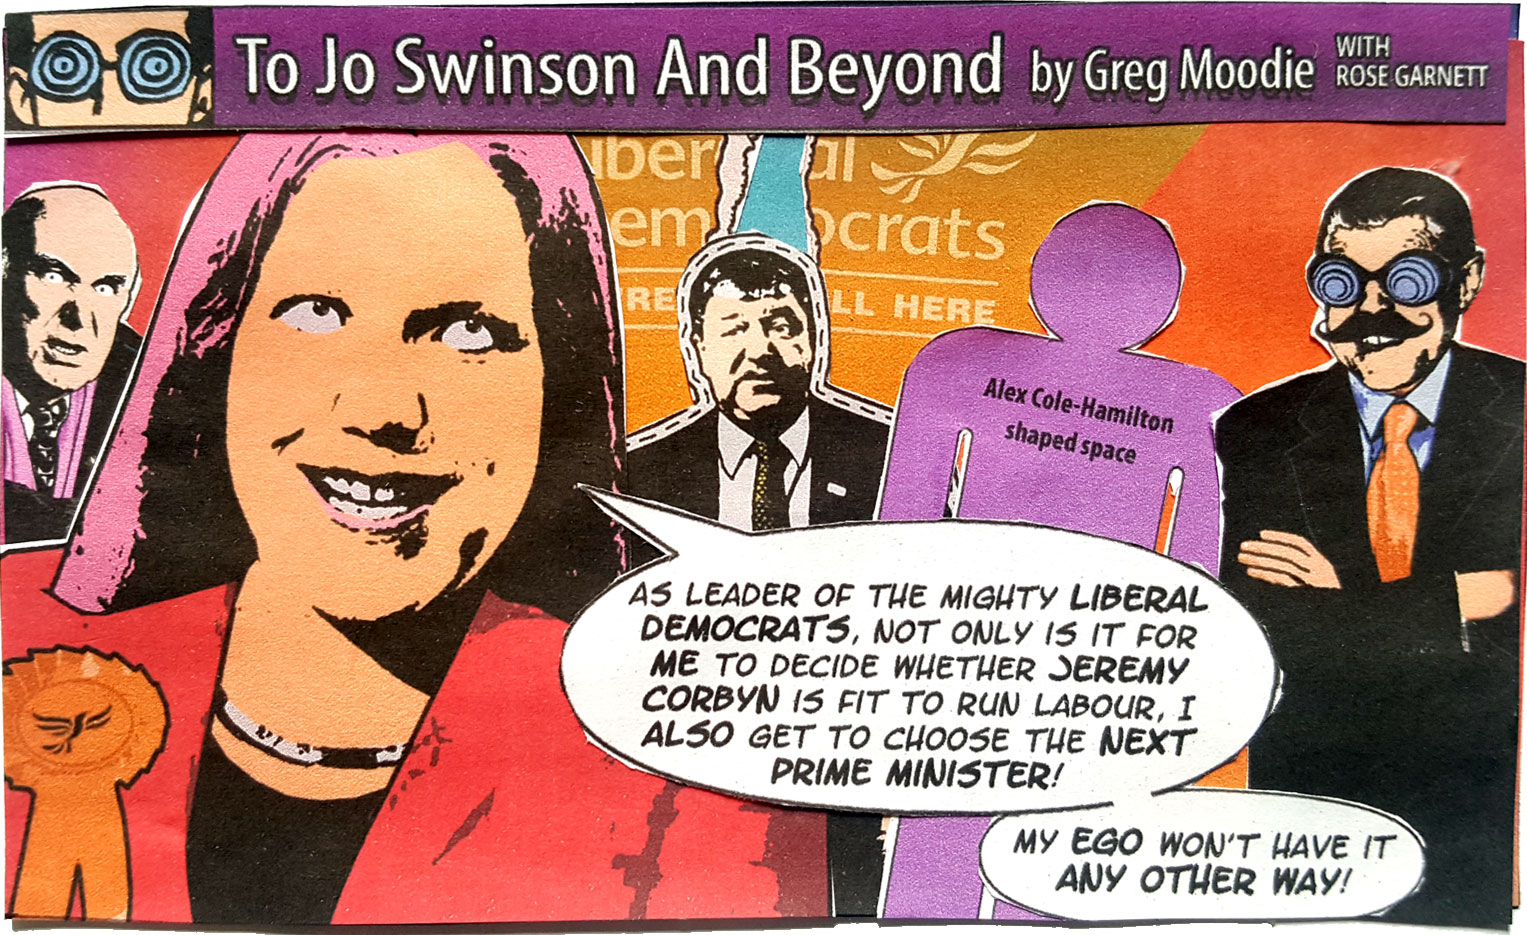 To Jo Swinson And Beyond